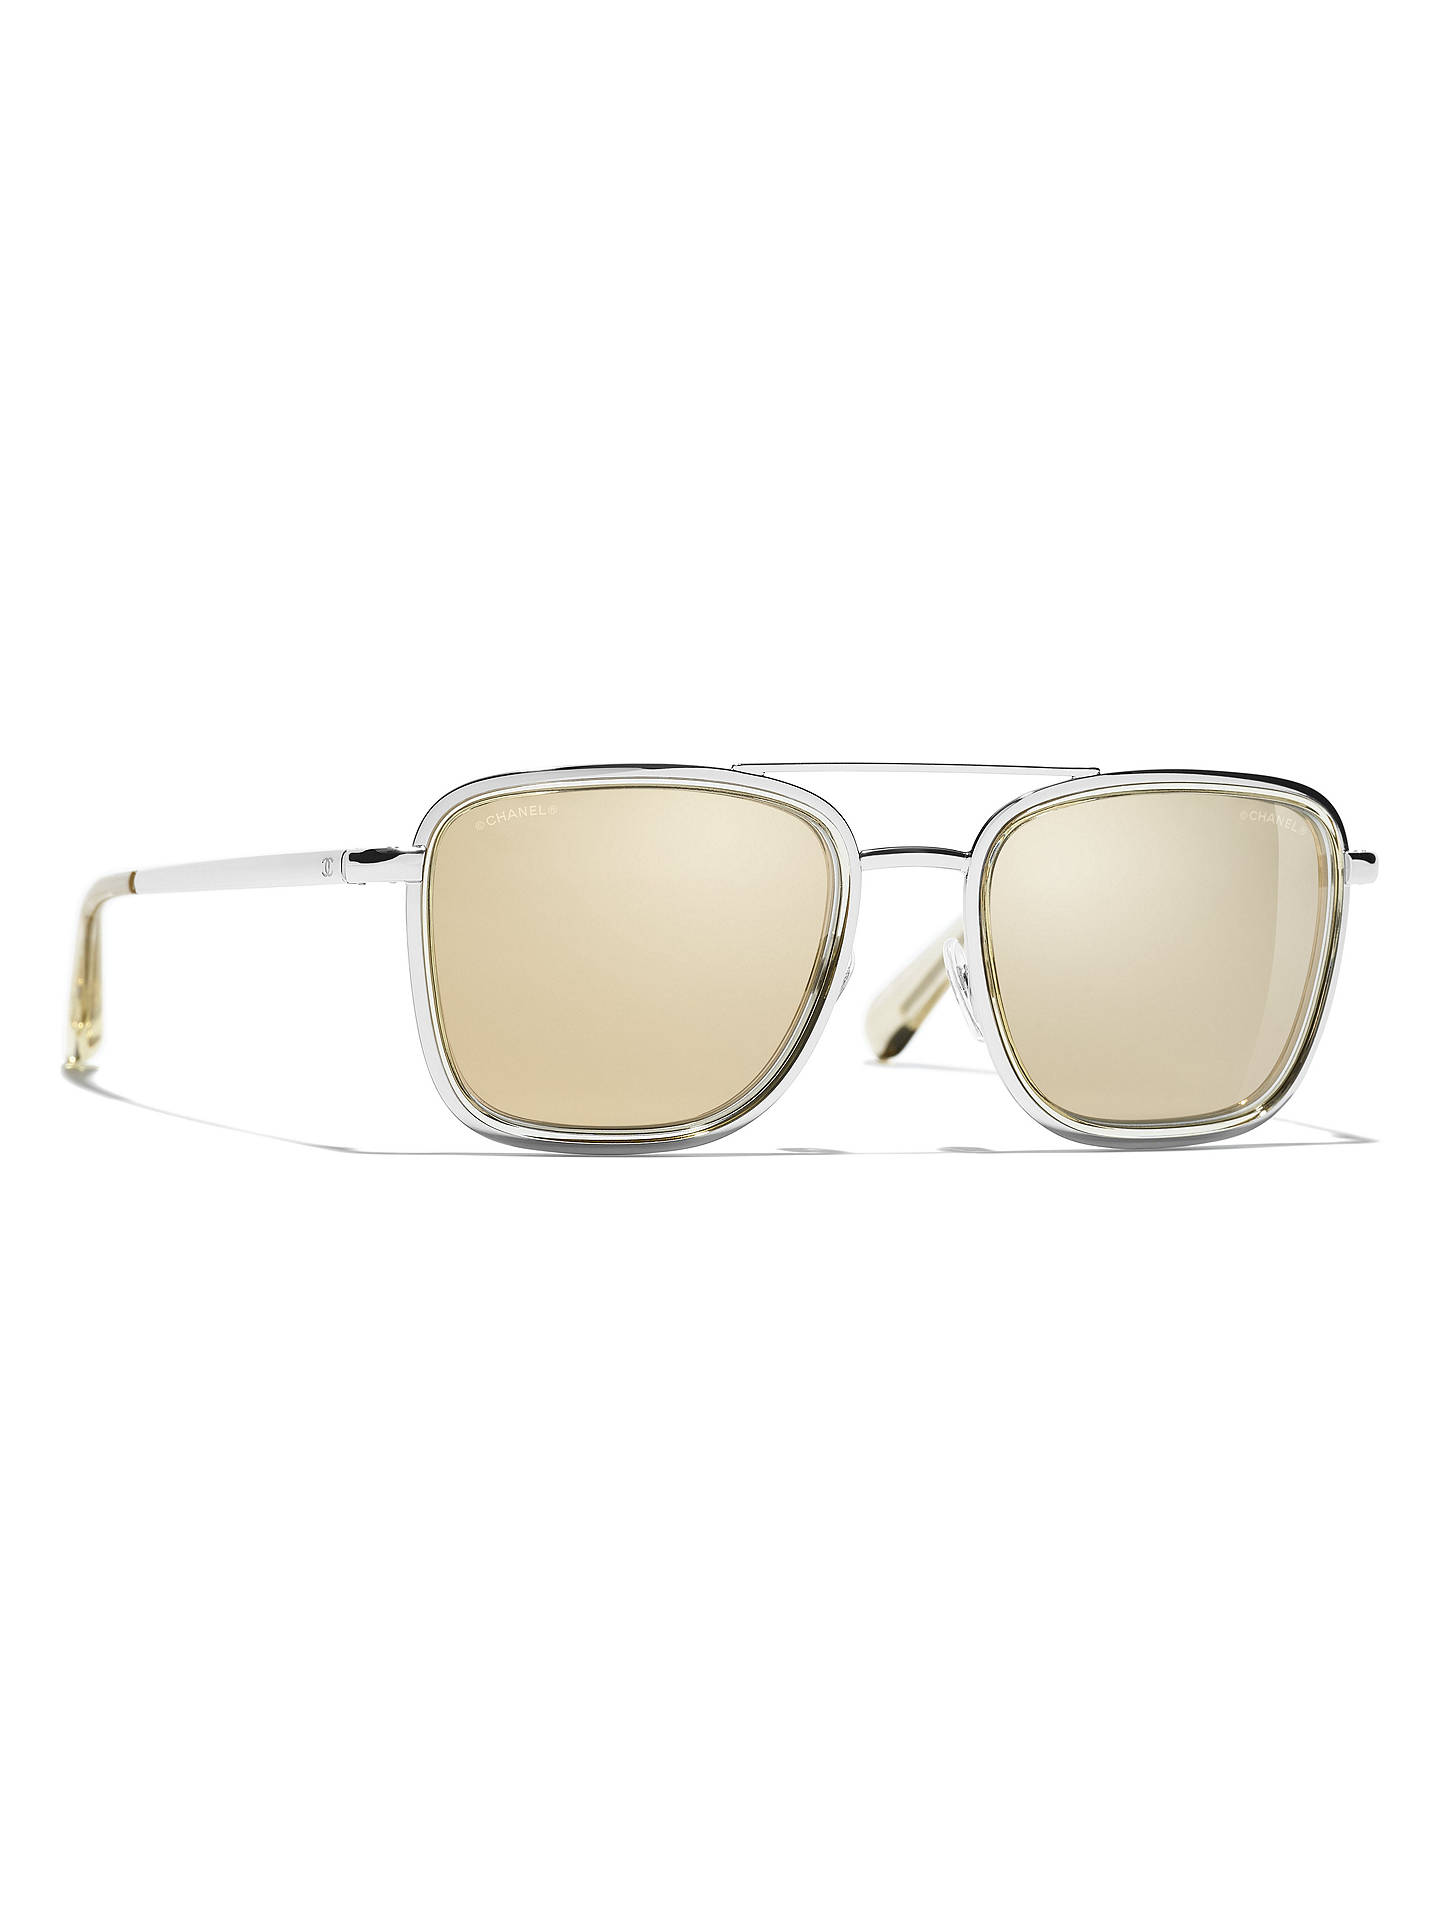 BuyCHANEL Square Sunglasses CH4241 Silver/Mirror Gold Online at johnlewis.com